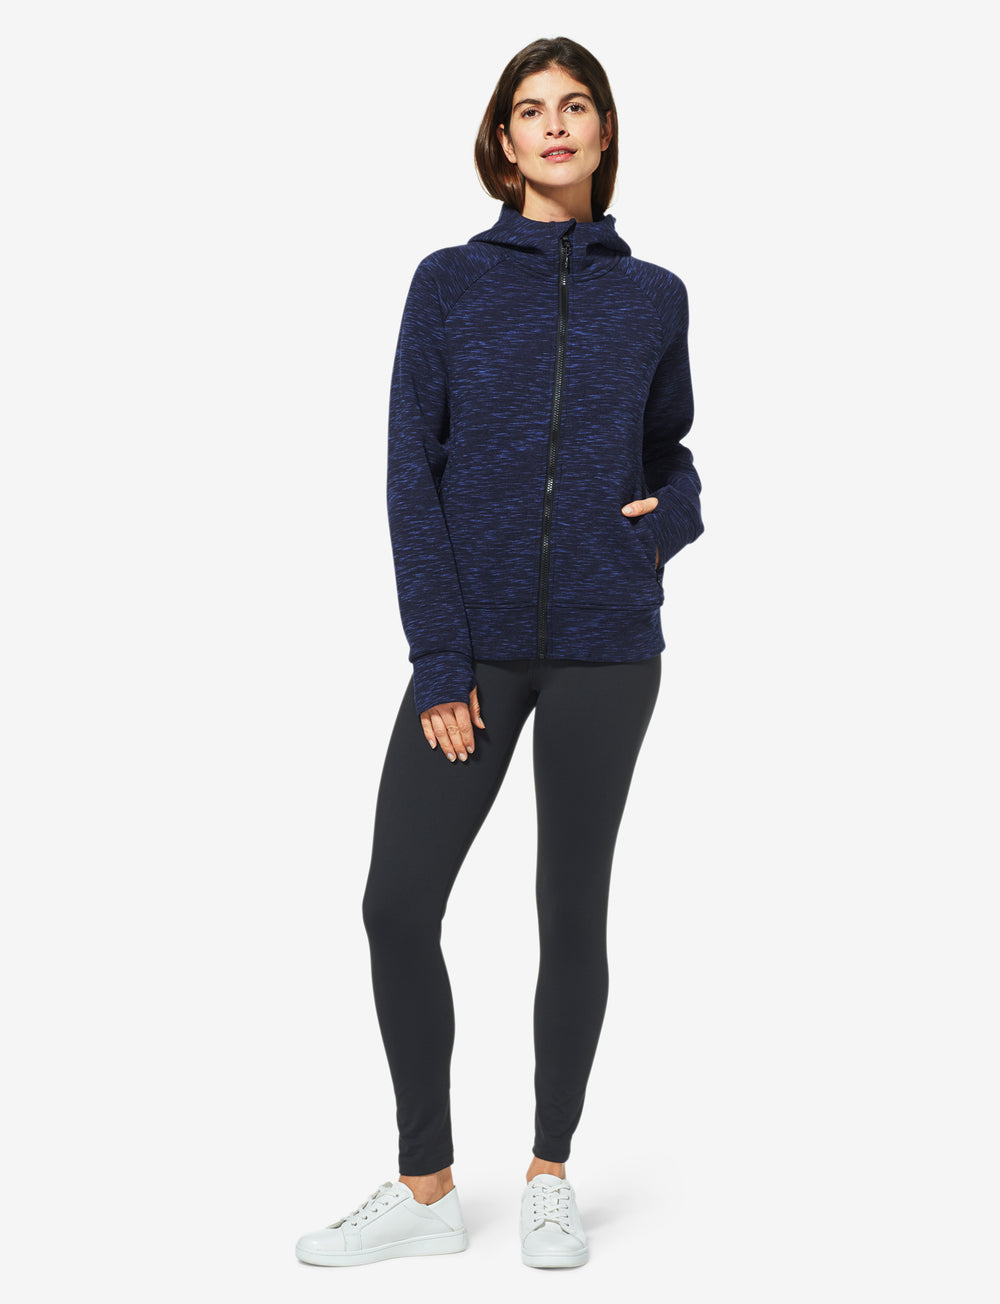 Women's Go Anywhere® Full Zip Spacer Hoodie Details Image